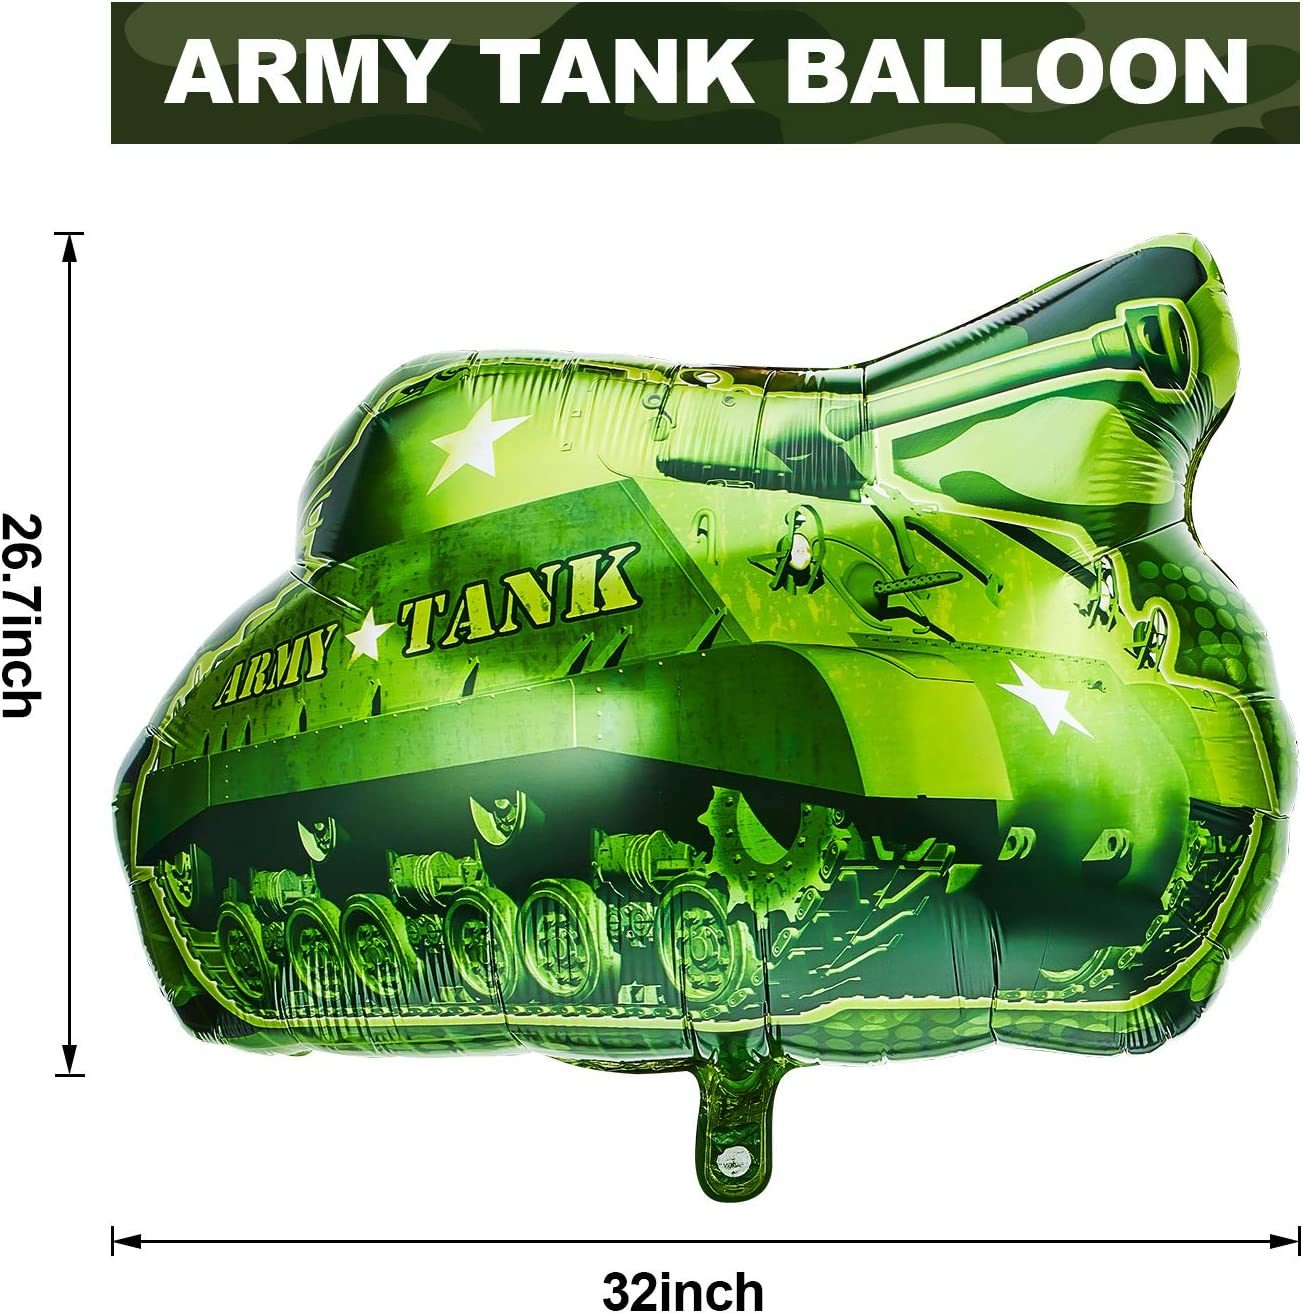 6 Pieces Army Tank Foil Balloon Tank Shape Mylar Balloons Camouflage Count Party Supplies Birthday Balloons for Army Themed Party Birthday Party Celebrations